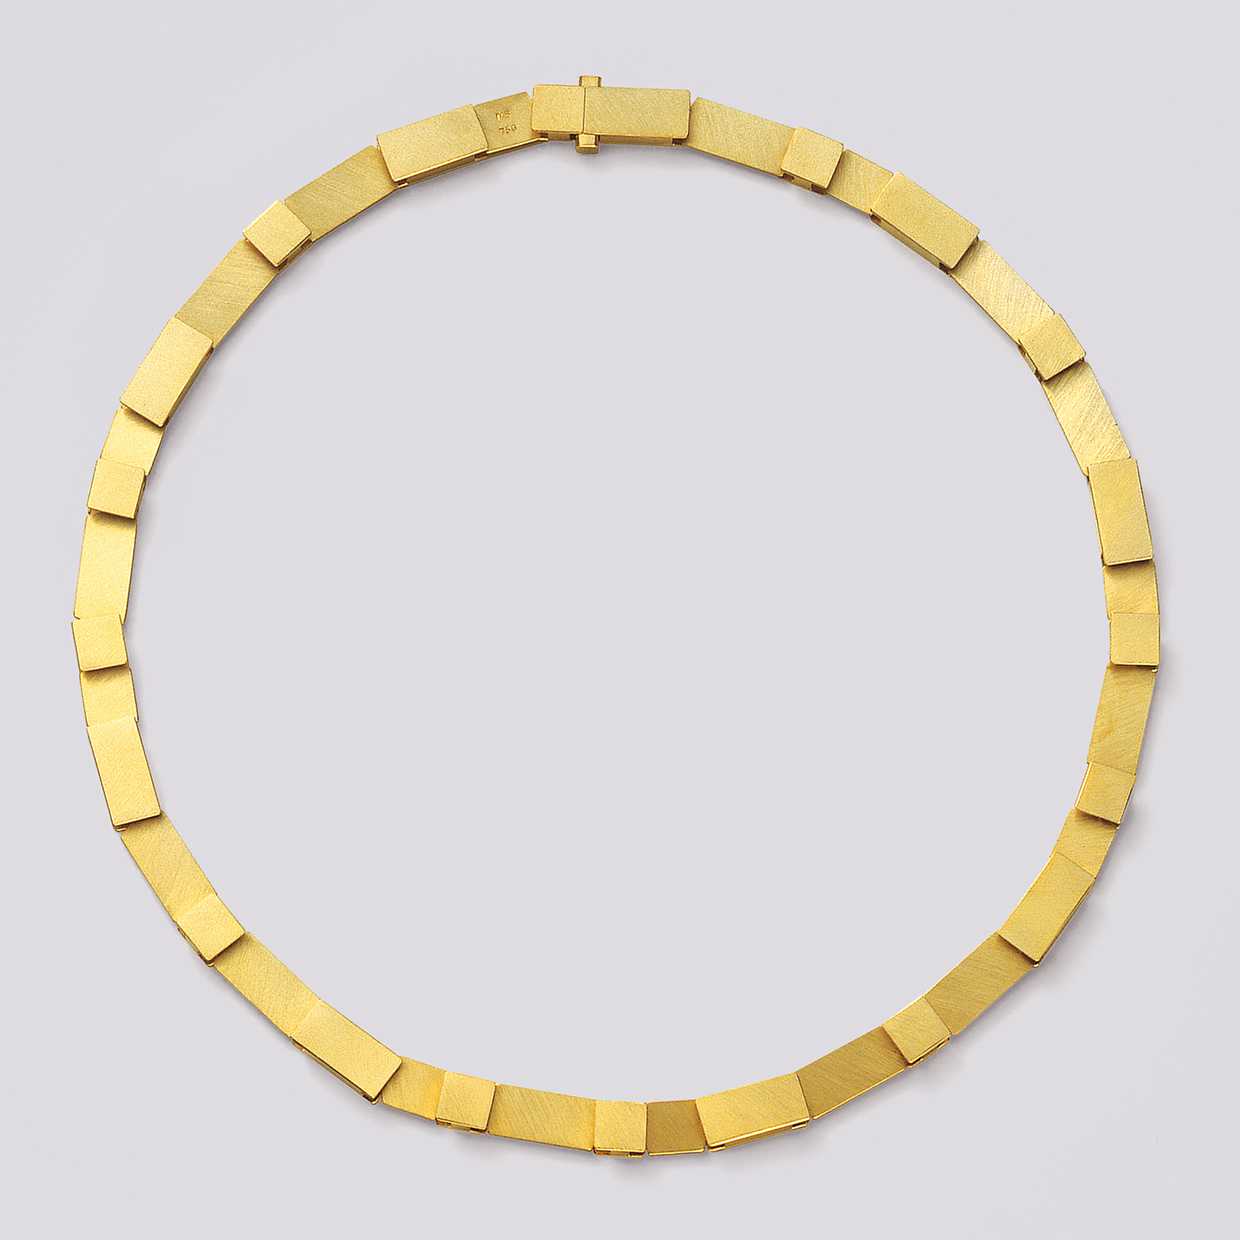 necklace  2000  gold  750  445x7  mm